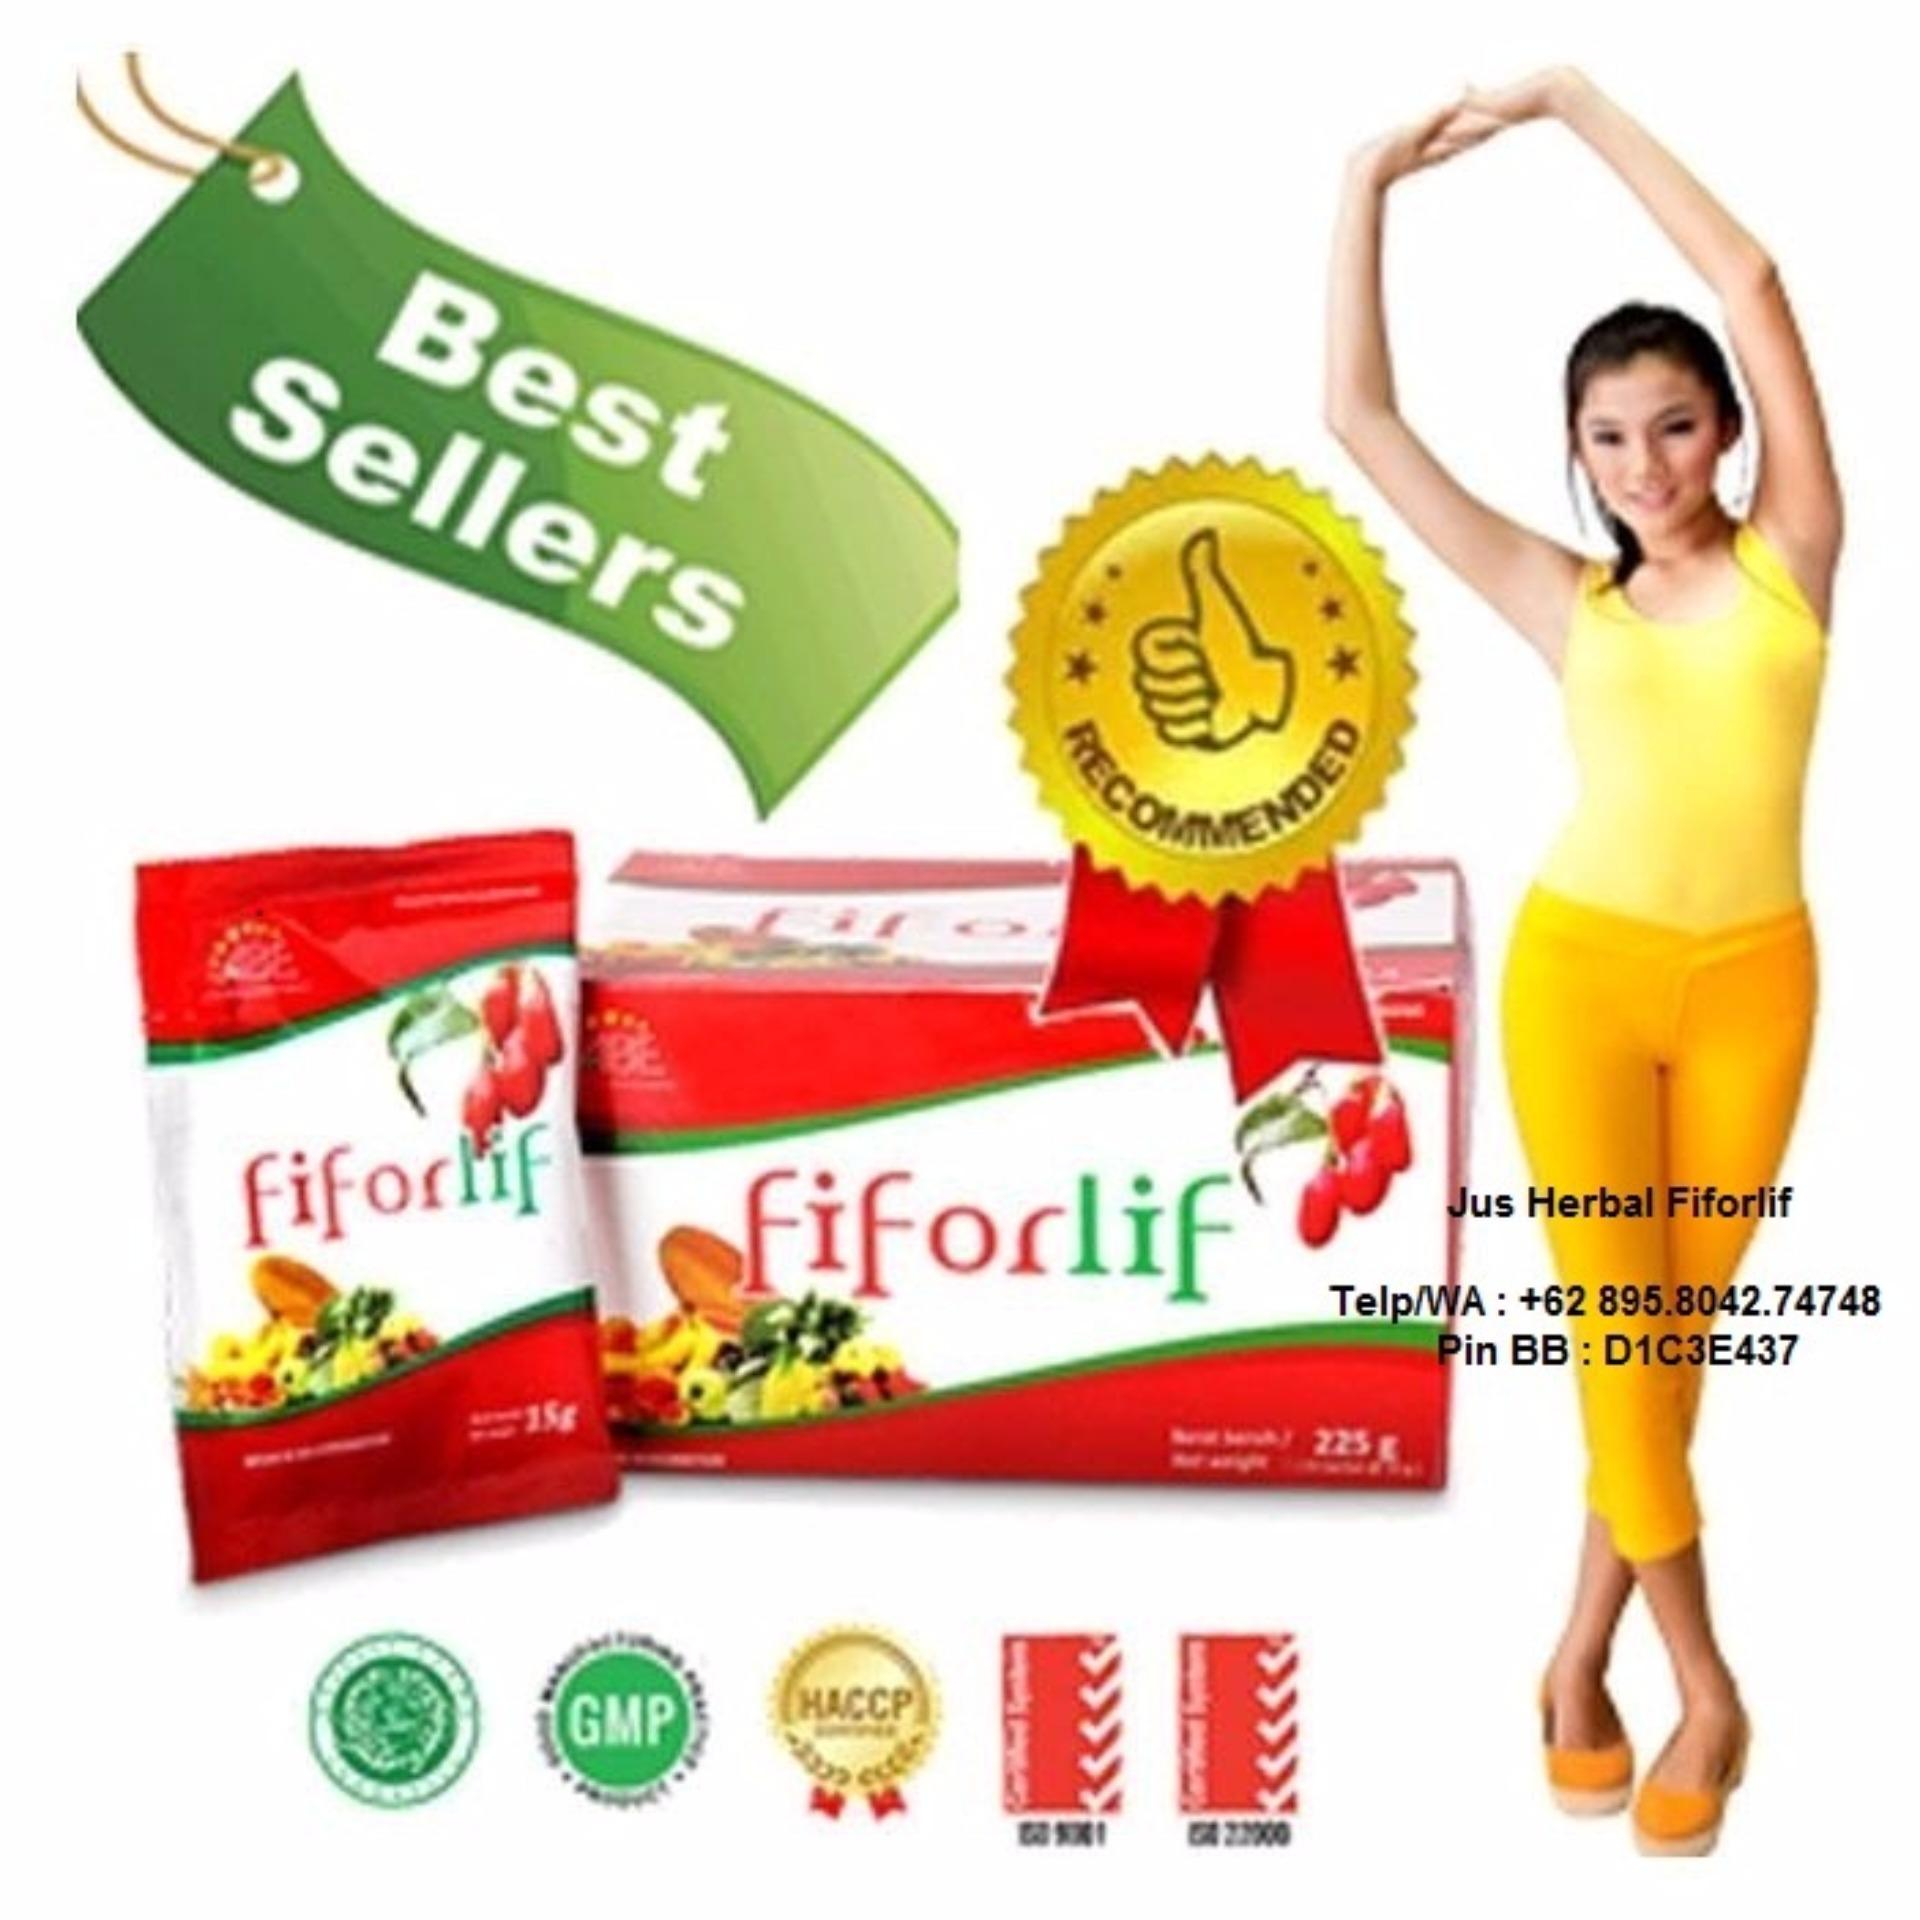 Terbaik Murah Jus Herbal Fiforlif Fiber For Our Life Surabaya